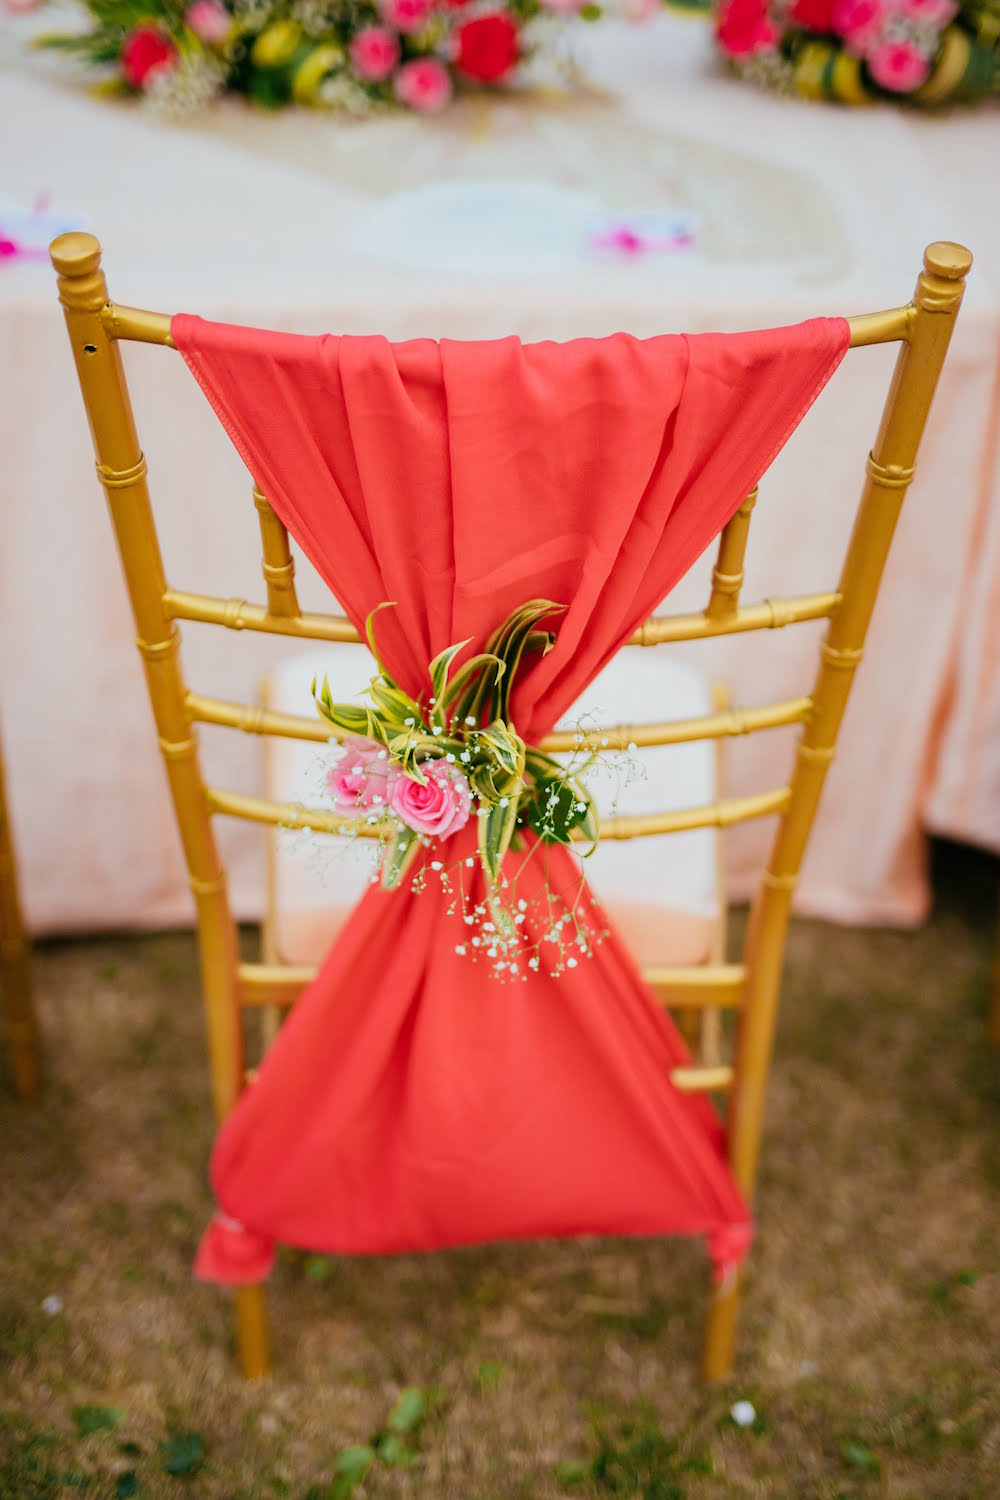 Wedding Chair Decor- Indian Wedding Decor